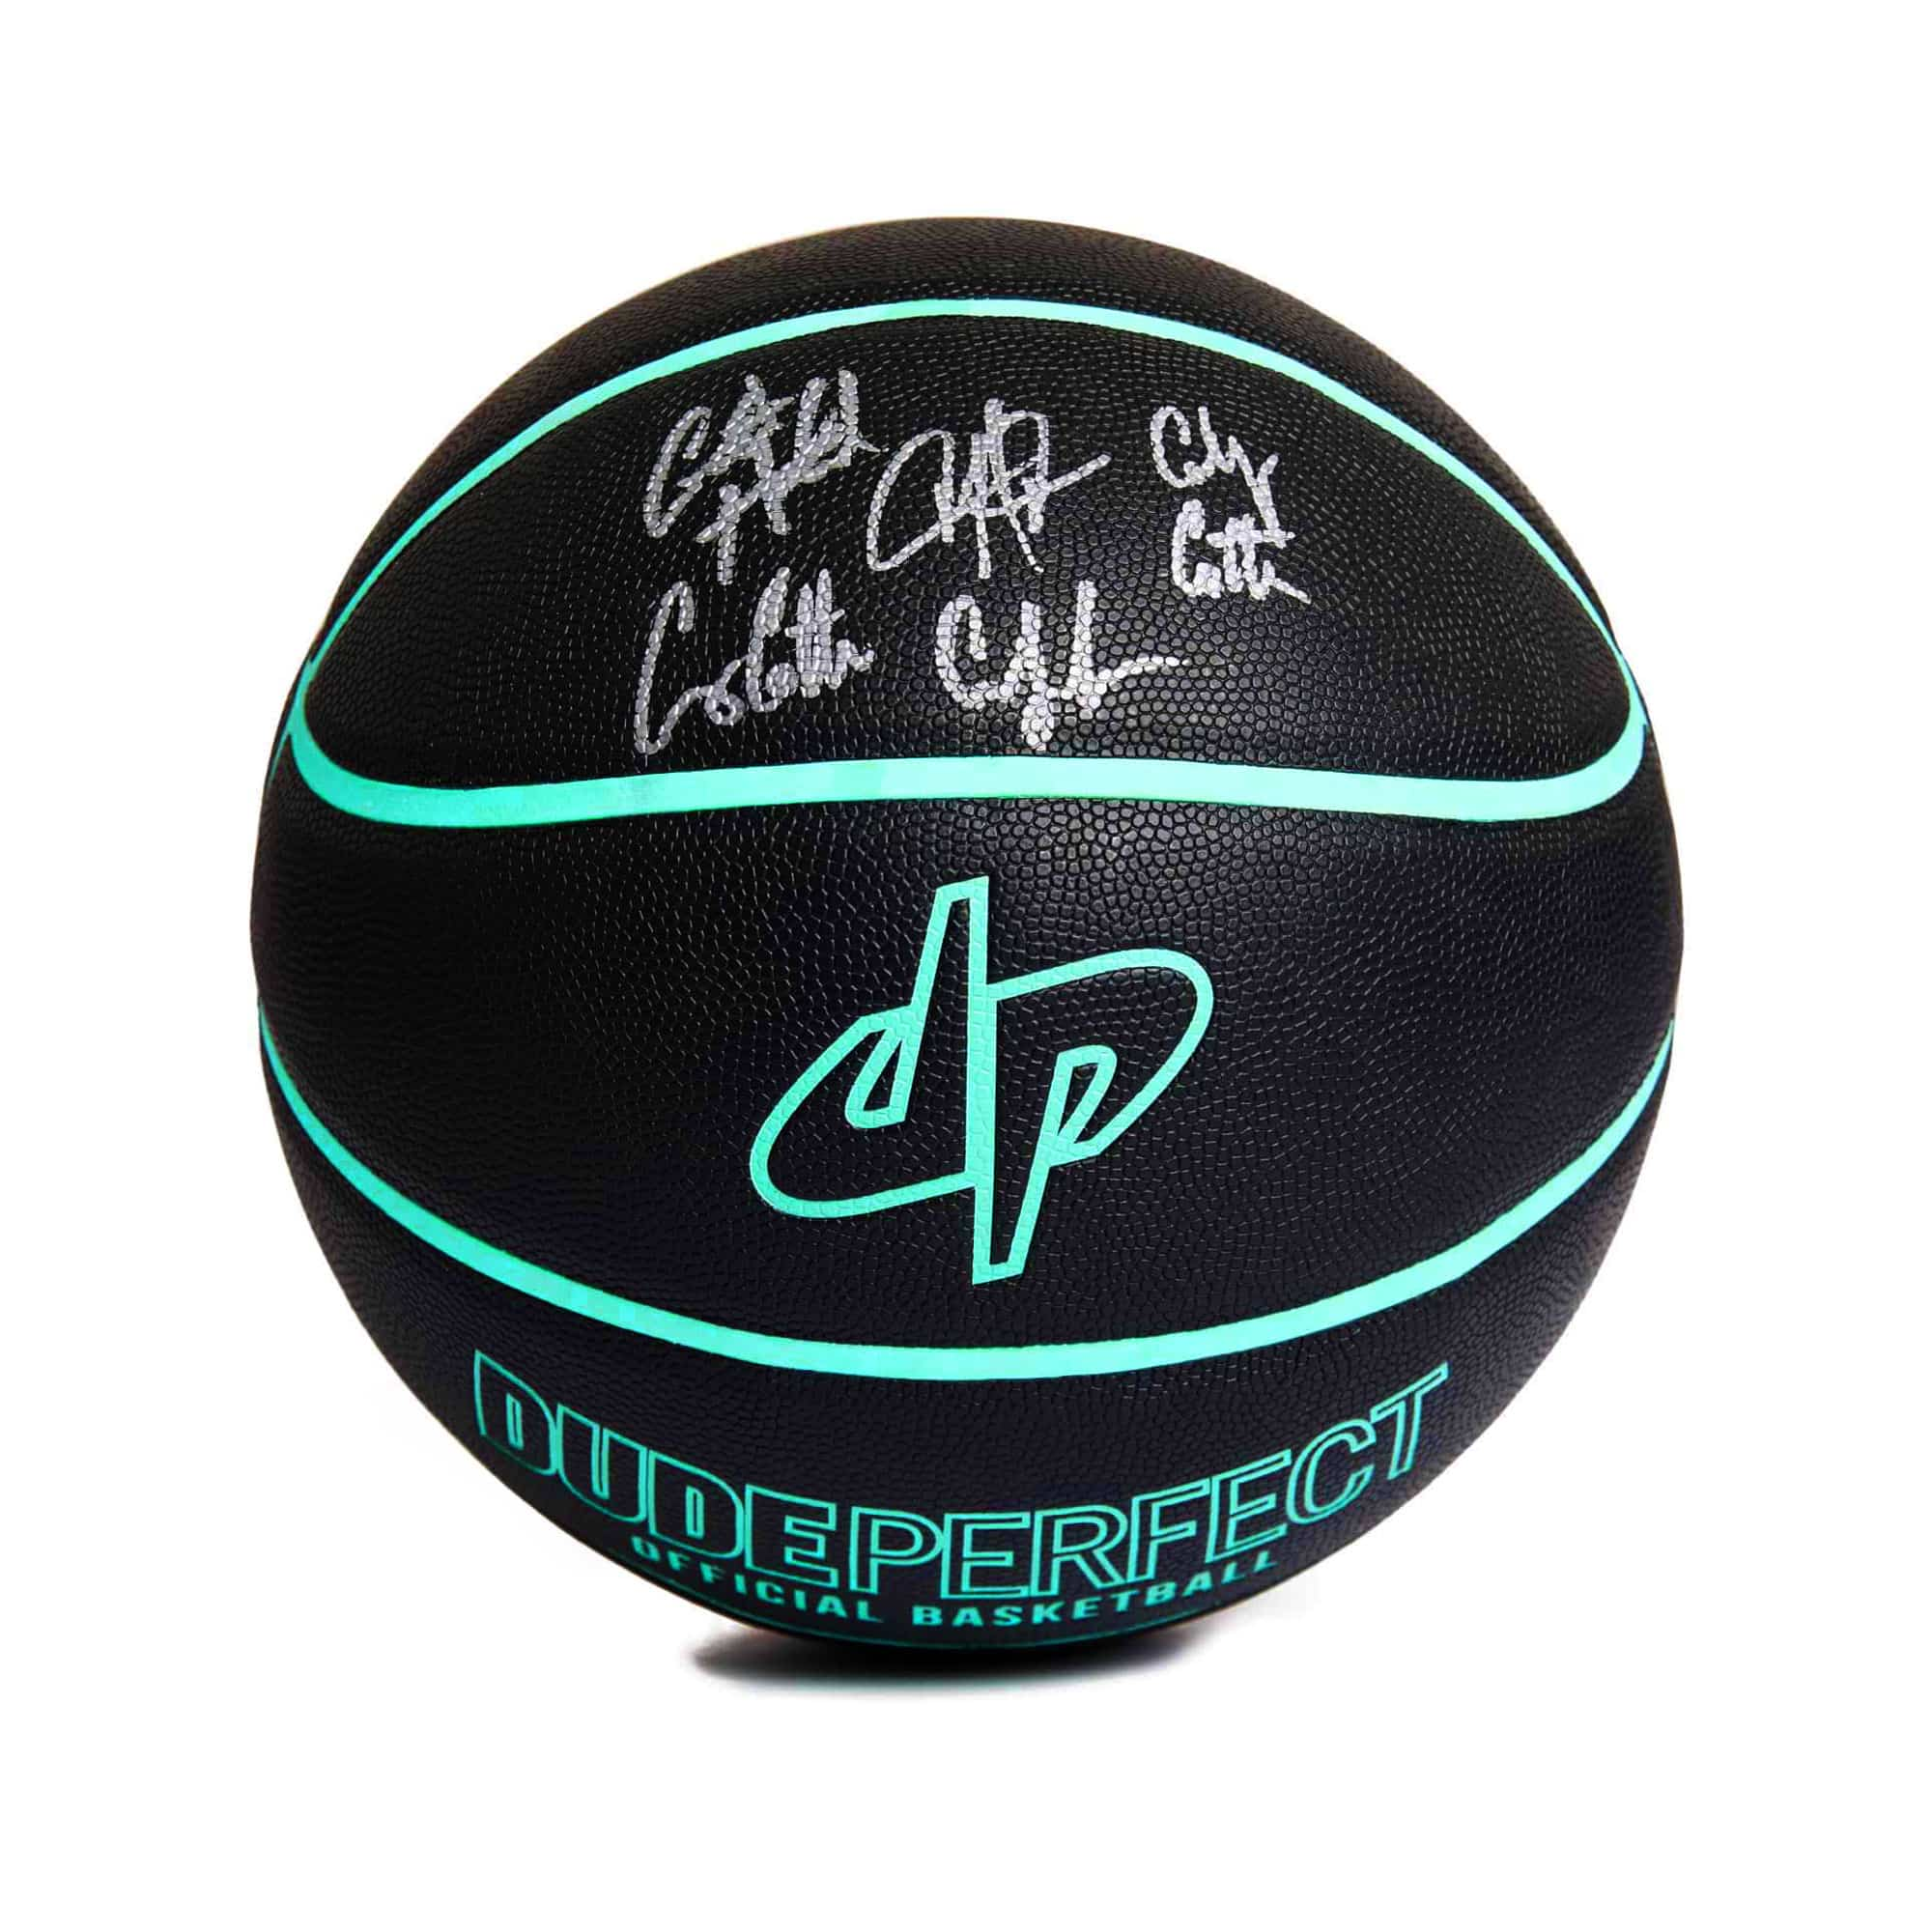 Dude Perfect Official Basketball // Black + Green - SIGNED